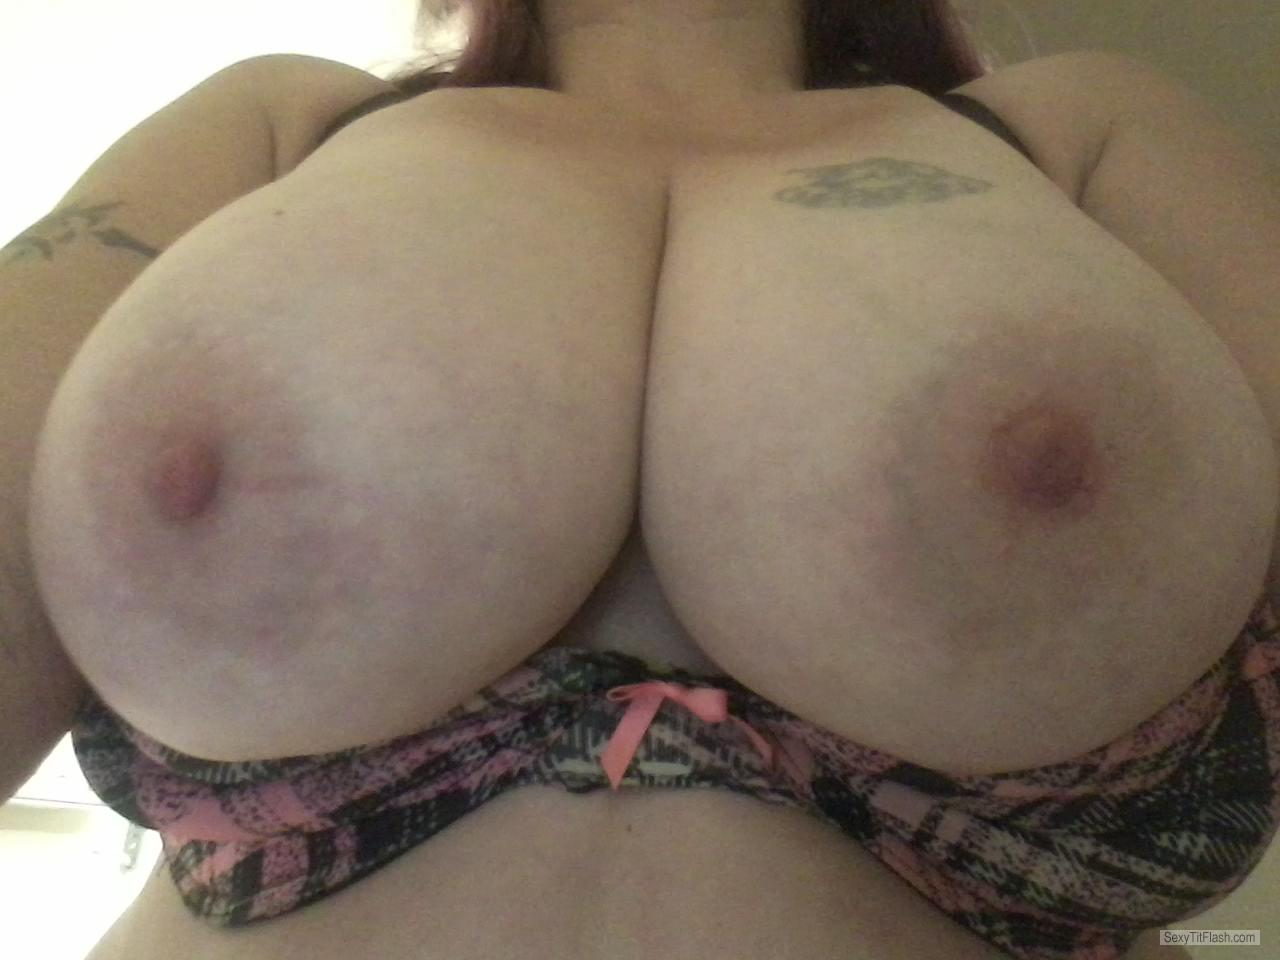 Tit Flash: My Very Small Tits (Selfie) - U Like? from United States